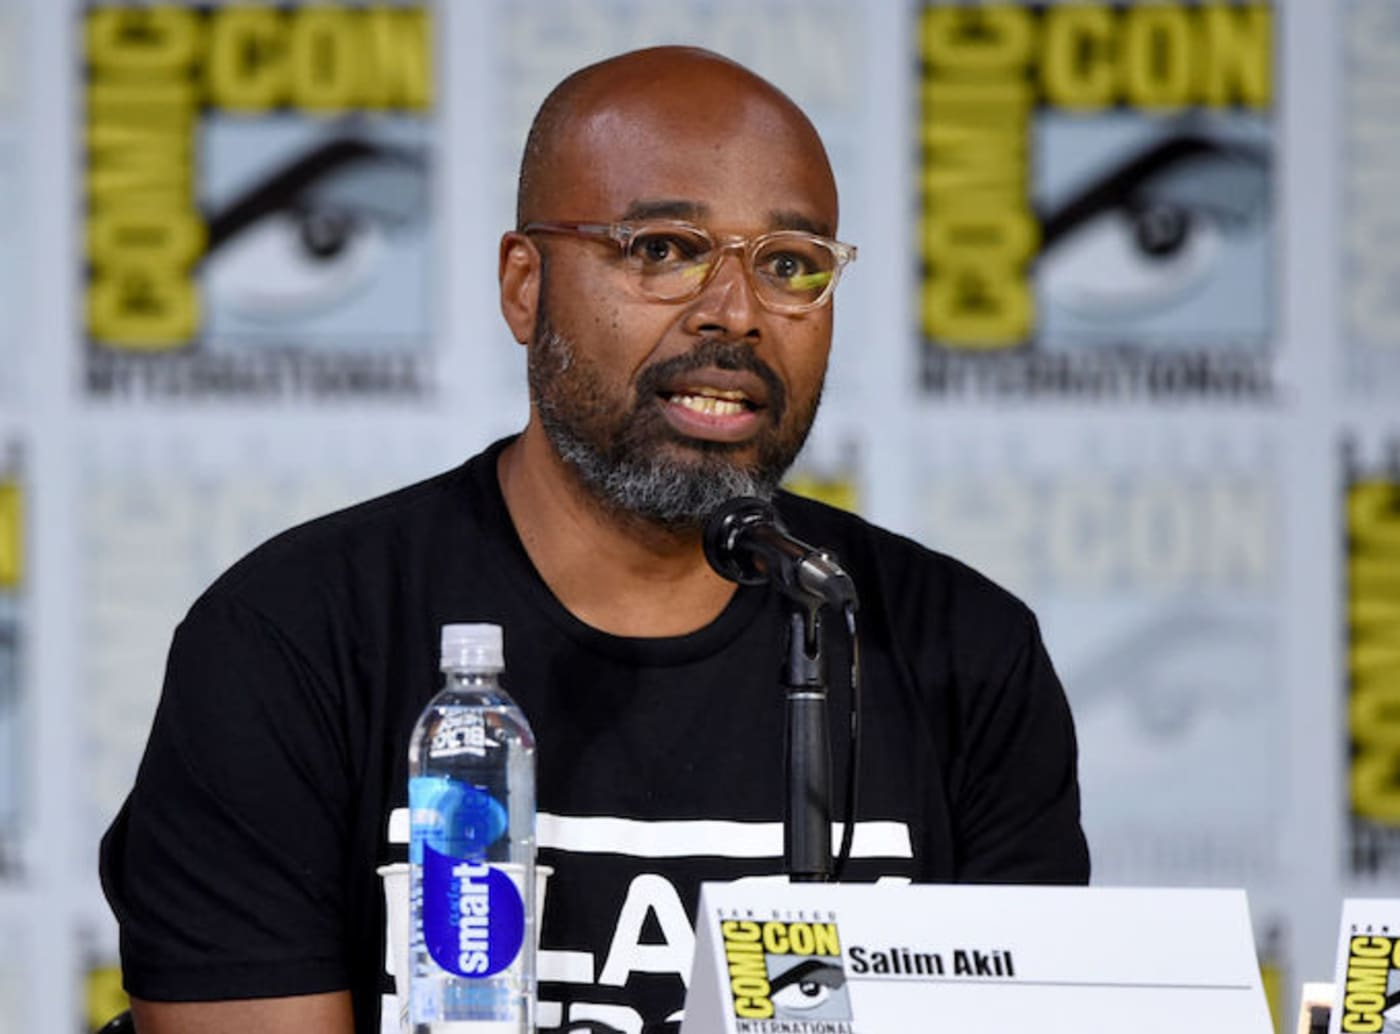 This is a picture of Salim Akil.